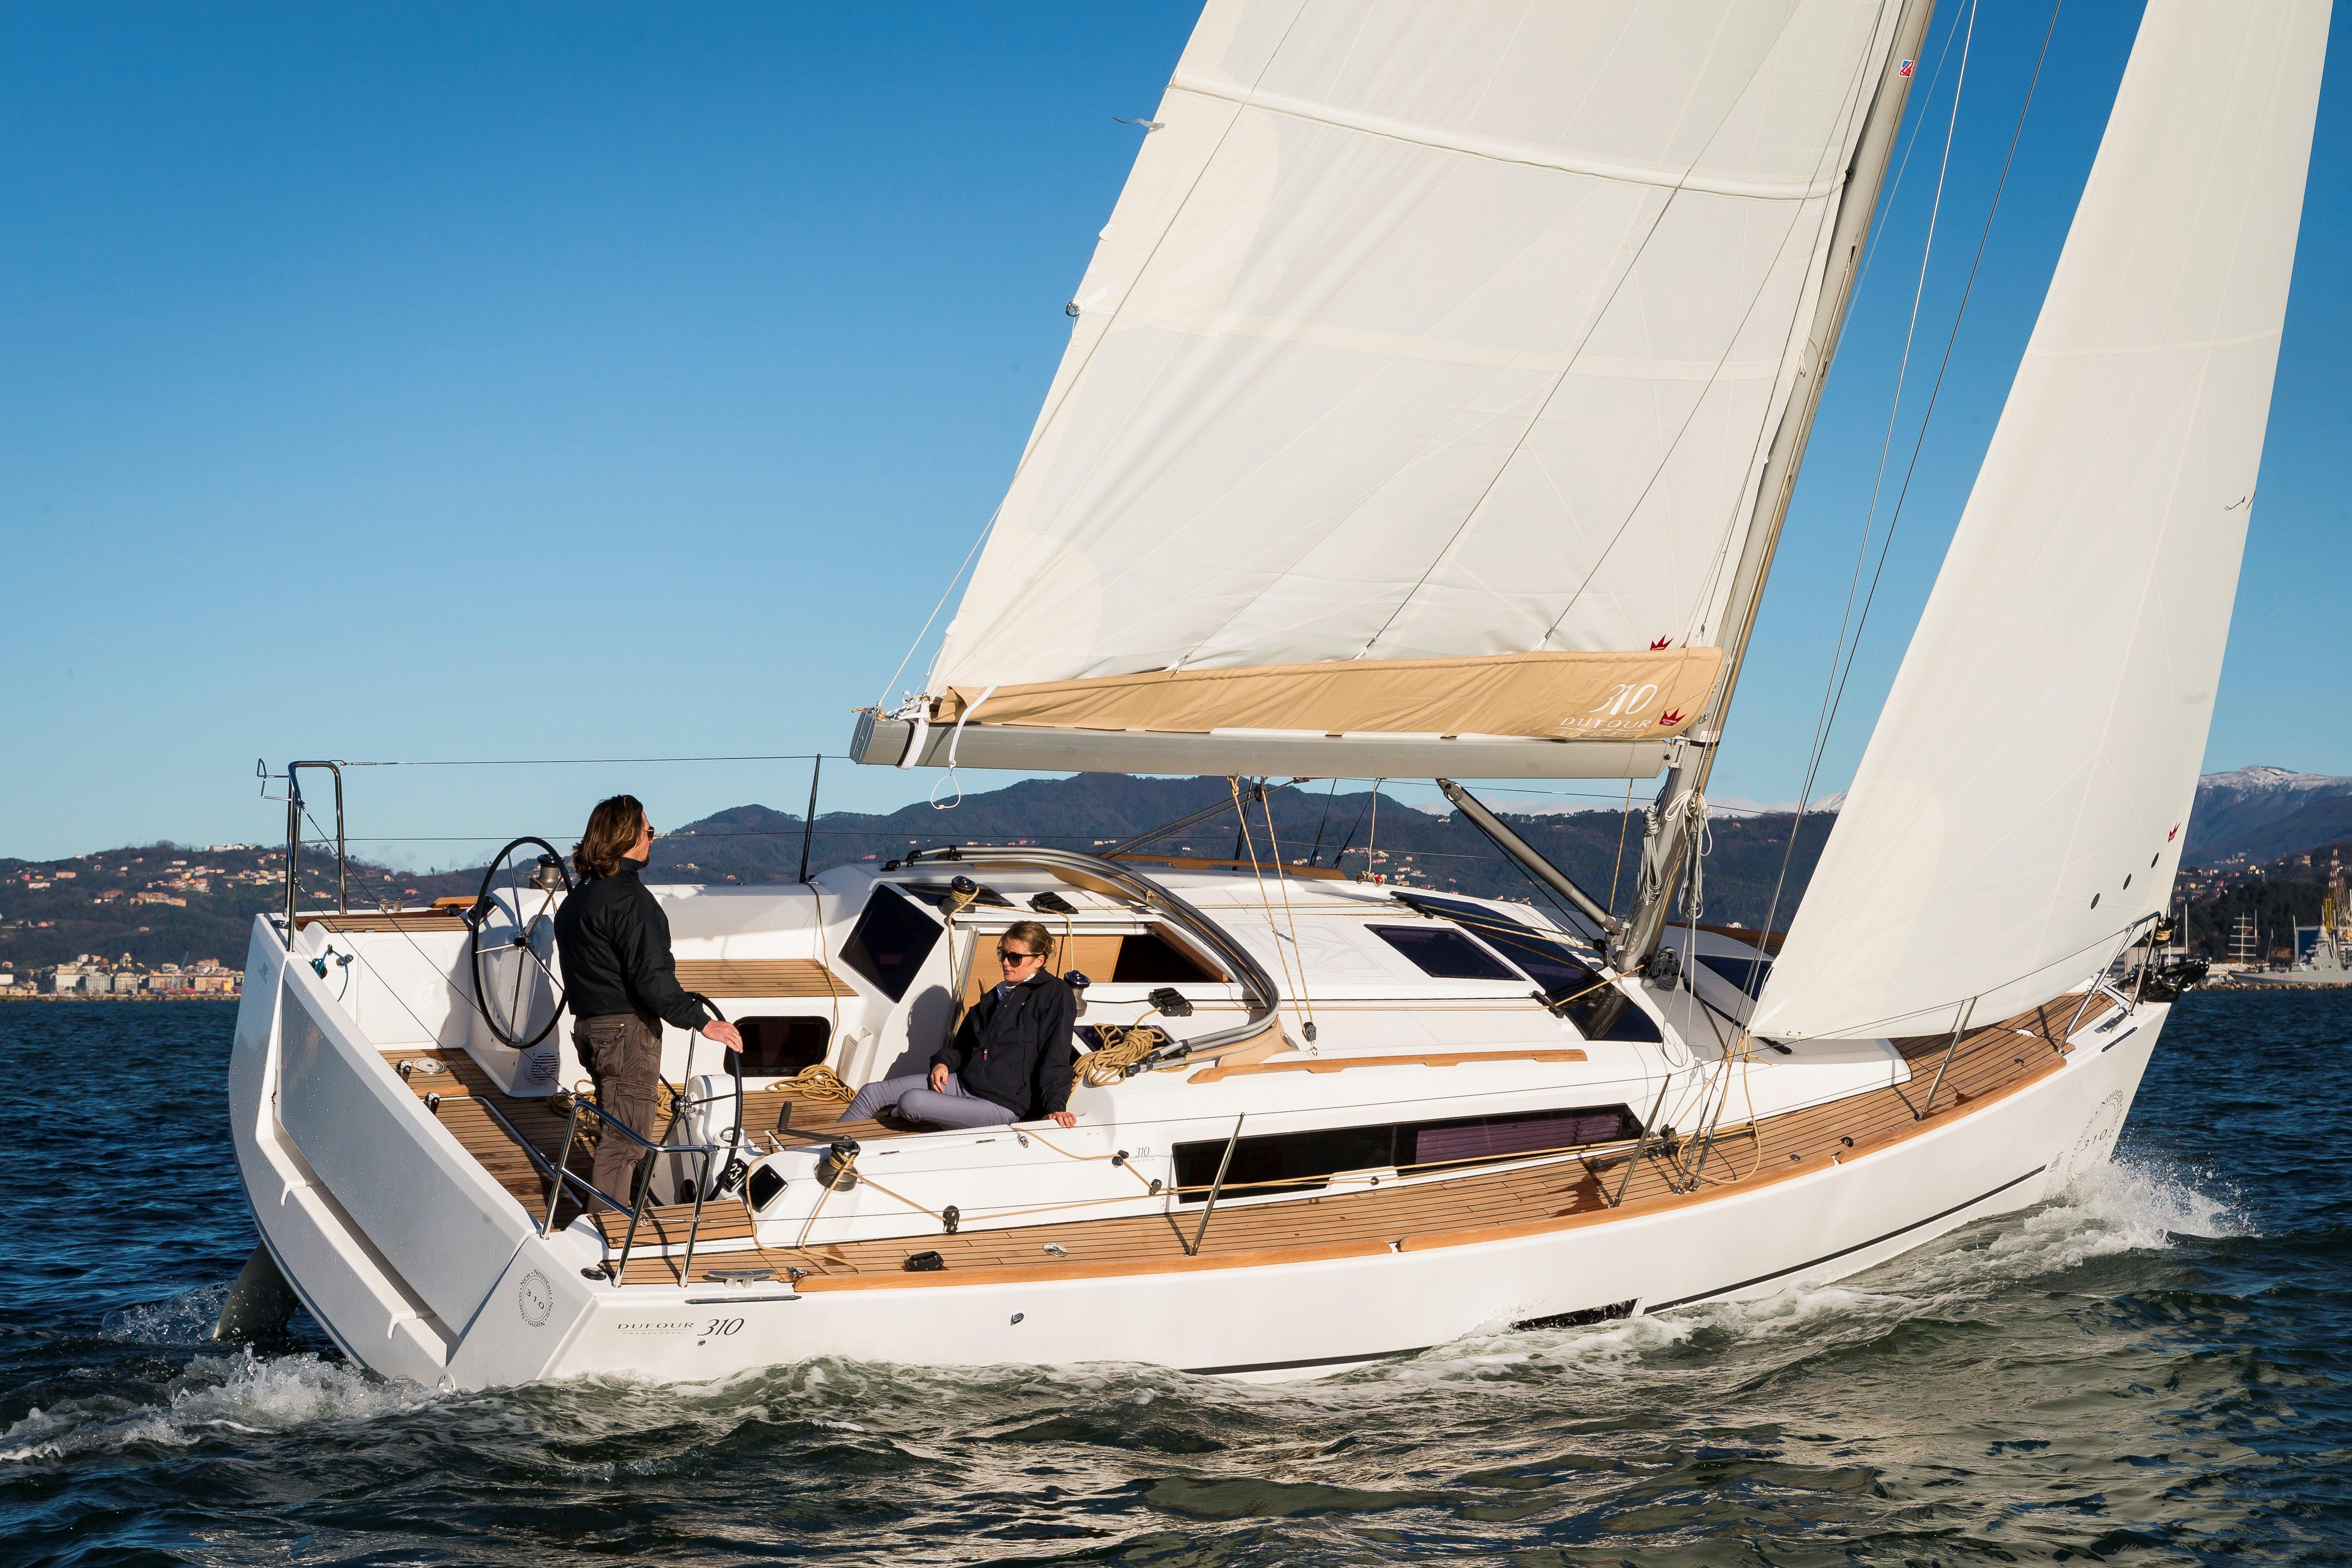 2015 Dufour 310 Grand Large Sail Boat For Sale  www